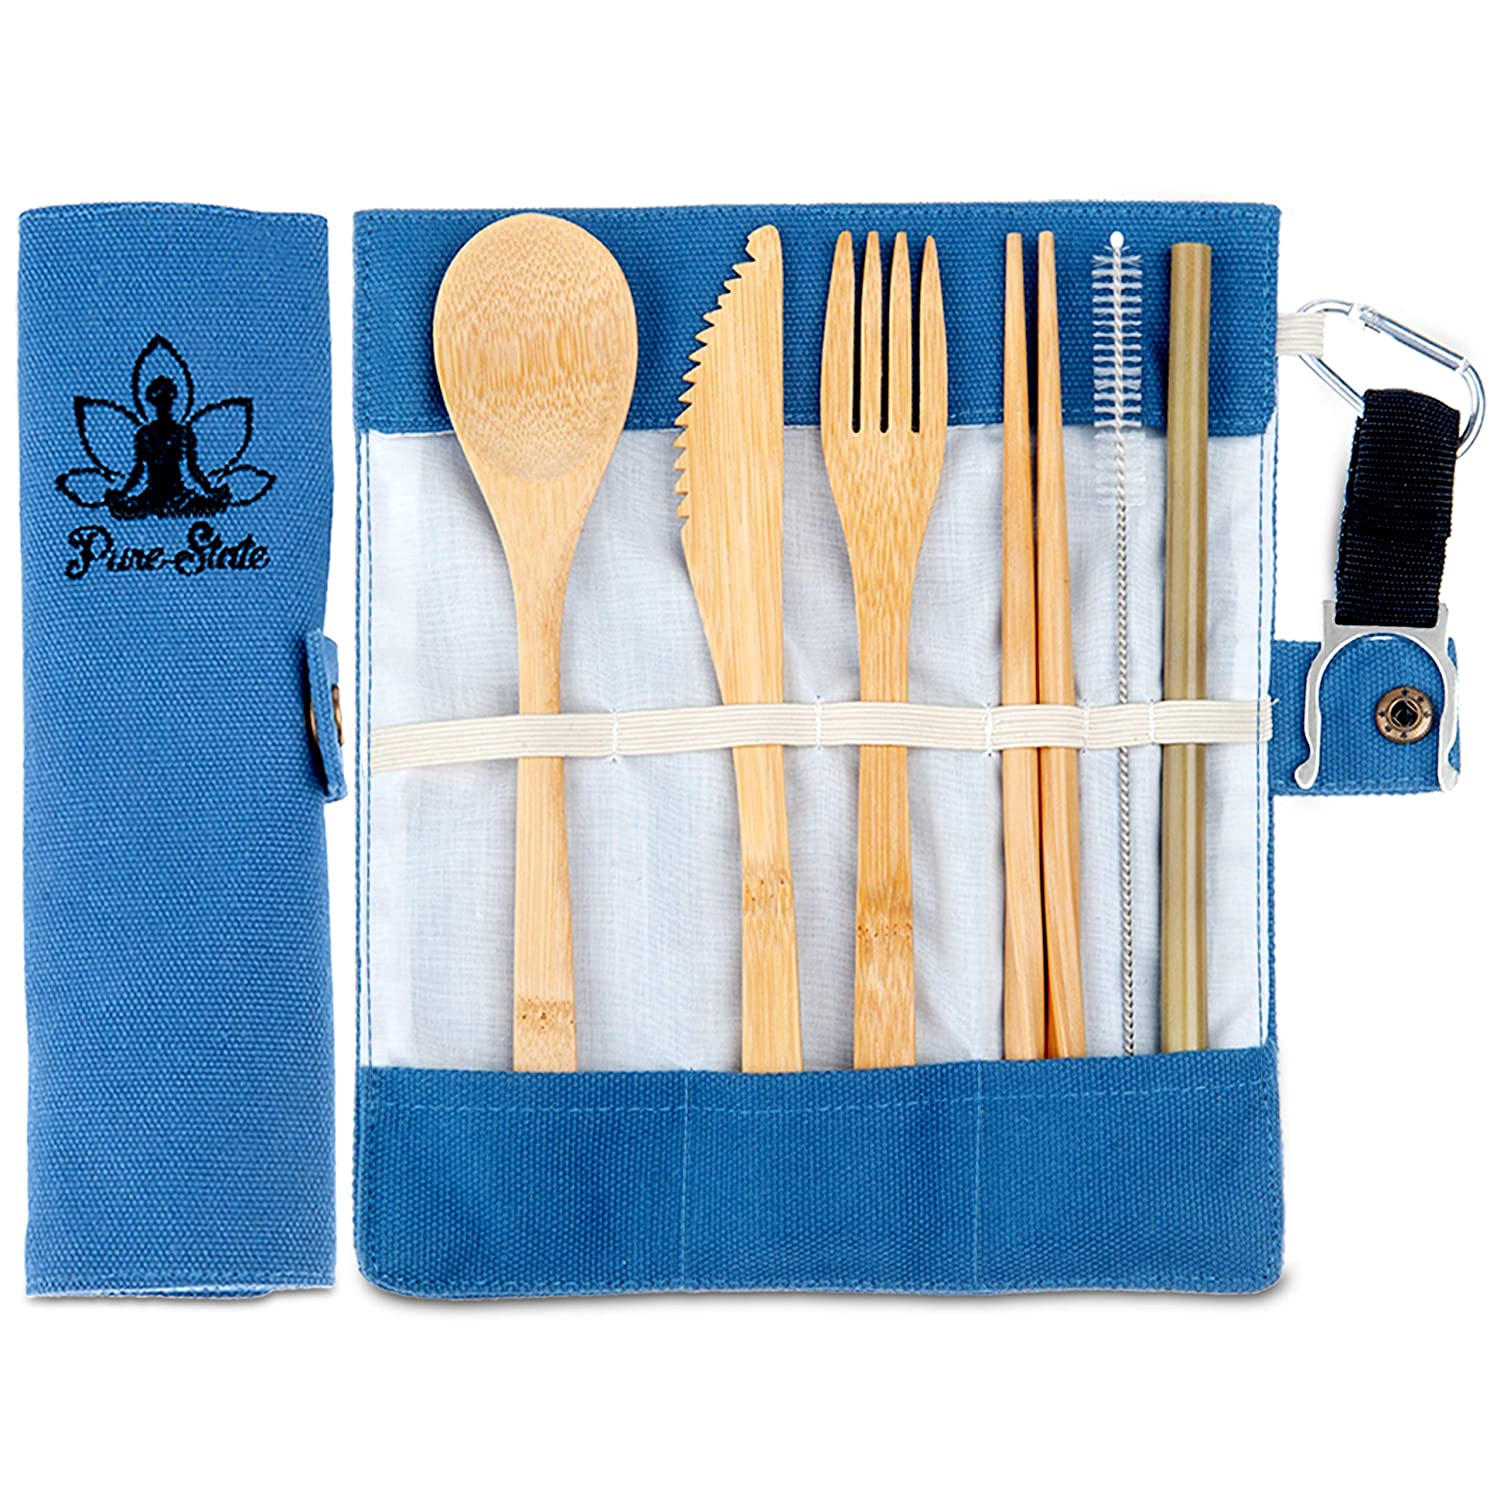 Amazon.com | Bamboo Utensils | Wooden Cutlery Set | 7-Piece Flatware | Travel | Camping | Zero Waste | Reusable | Including Case and Straw: Flatware Sets